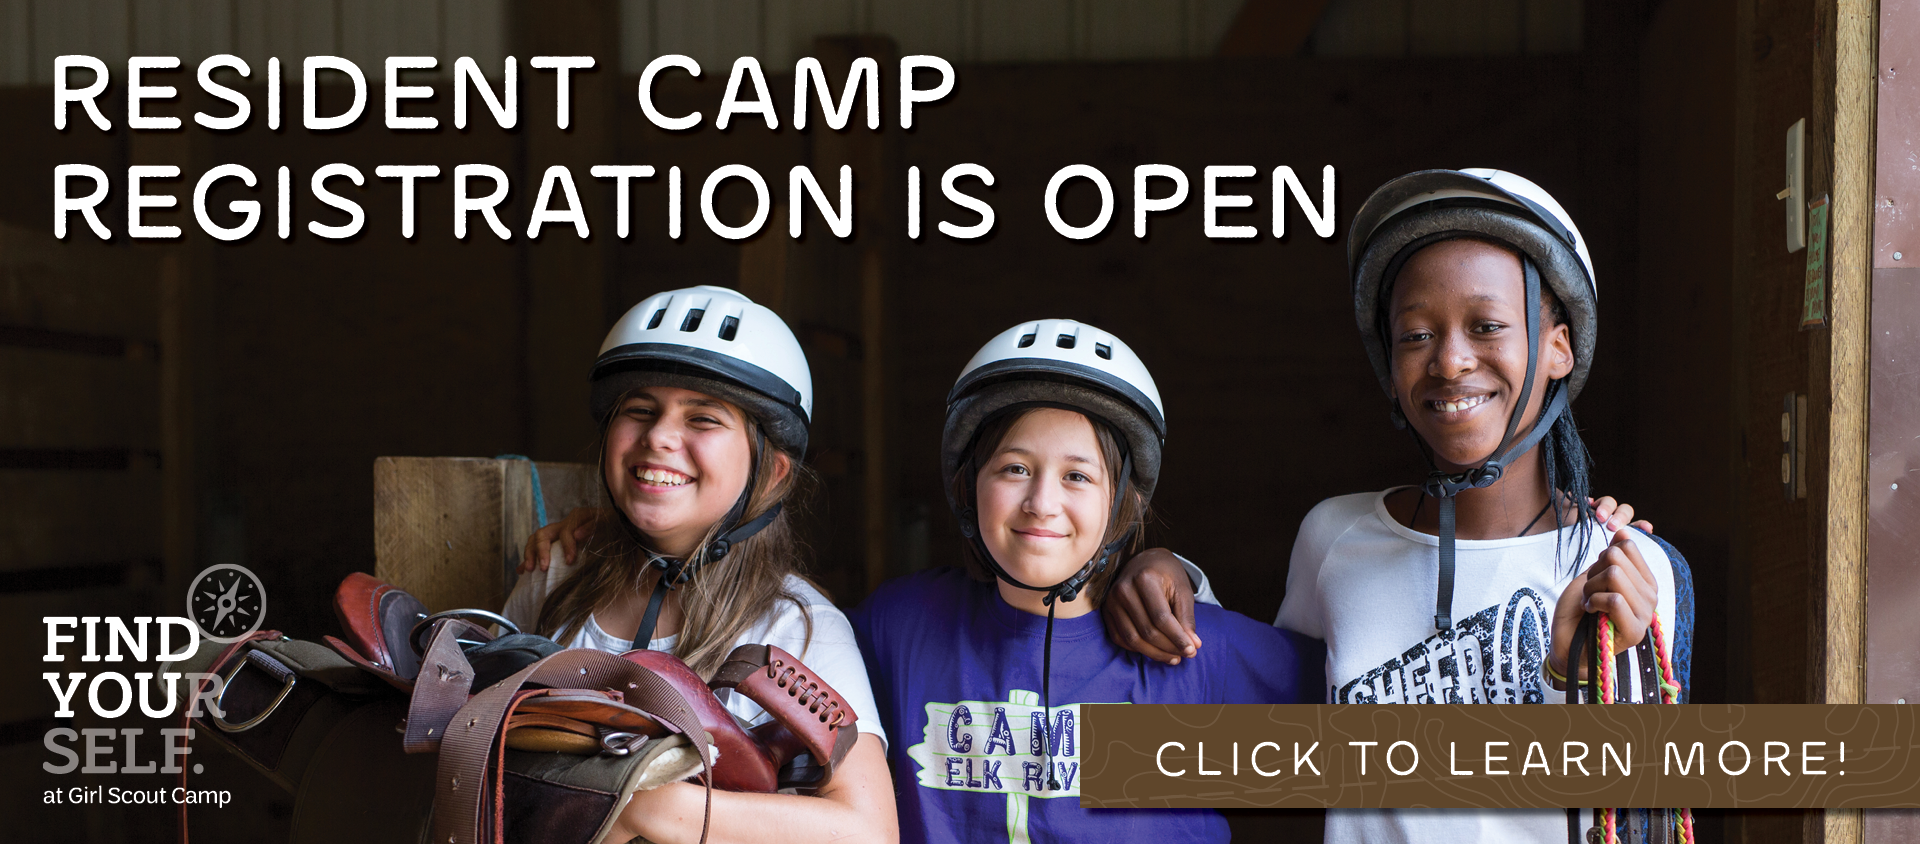 Registration for Resident Camp is now open! Click here to learn more.